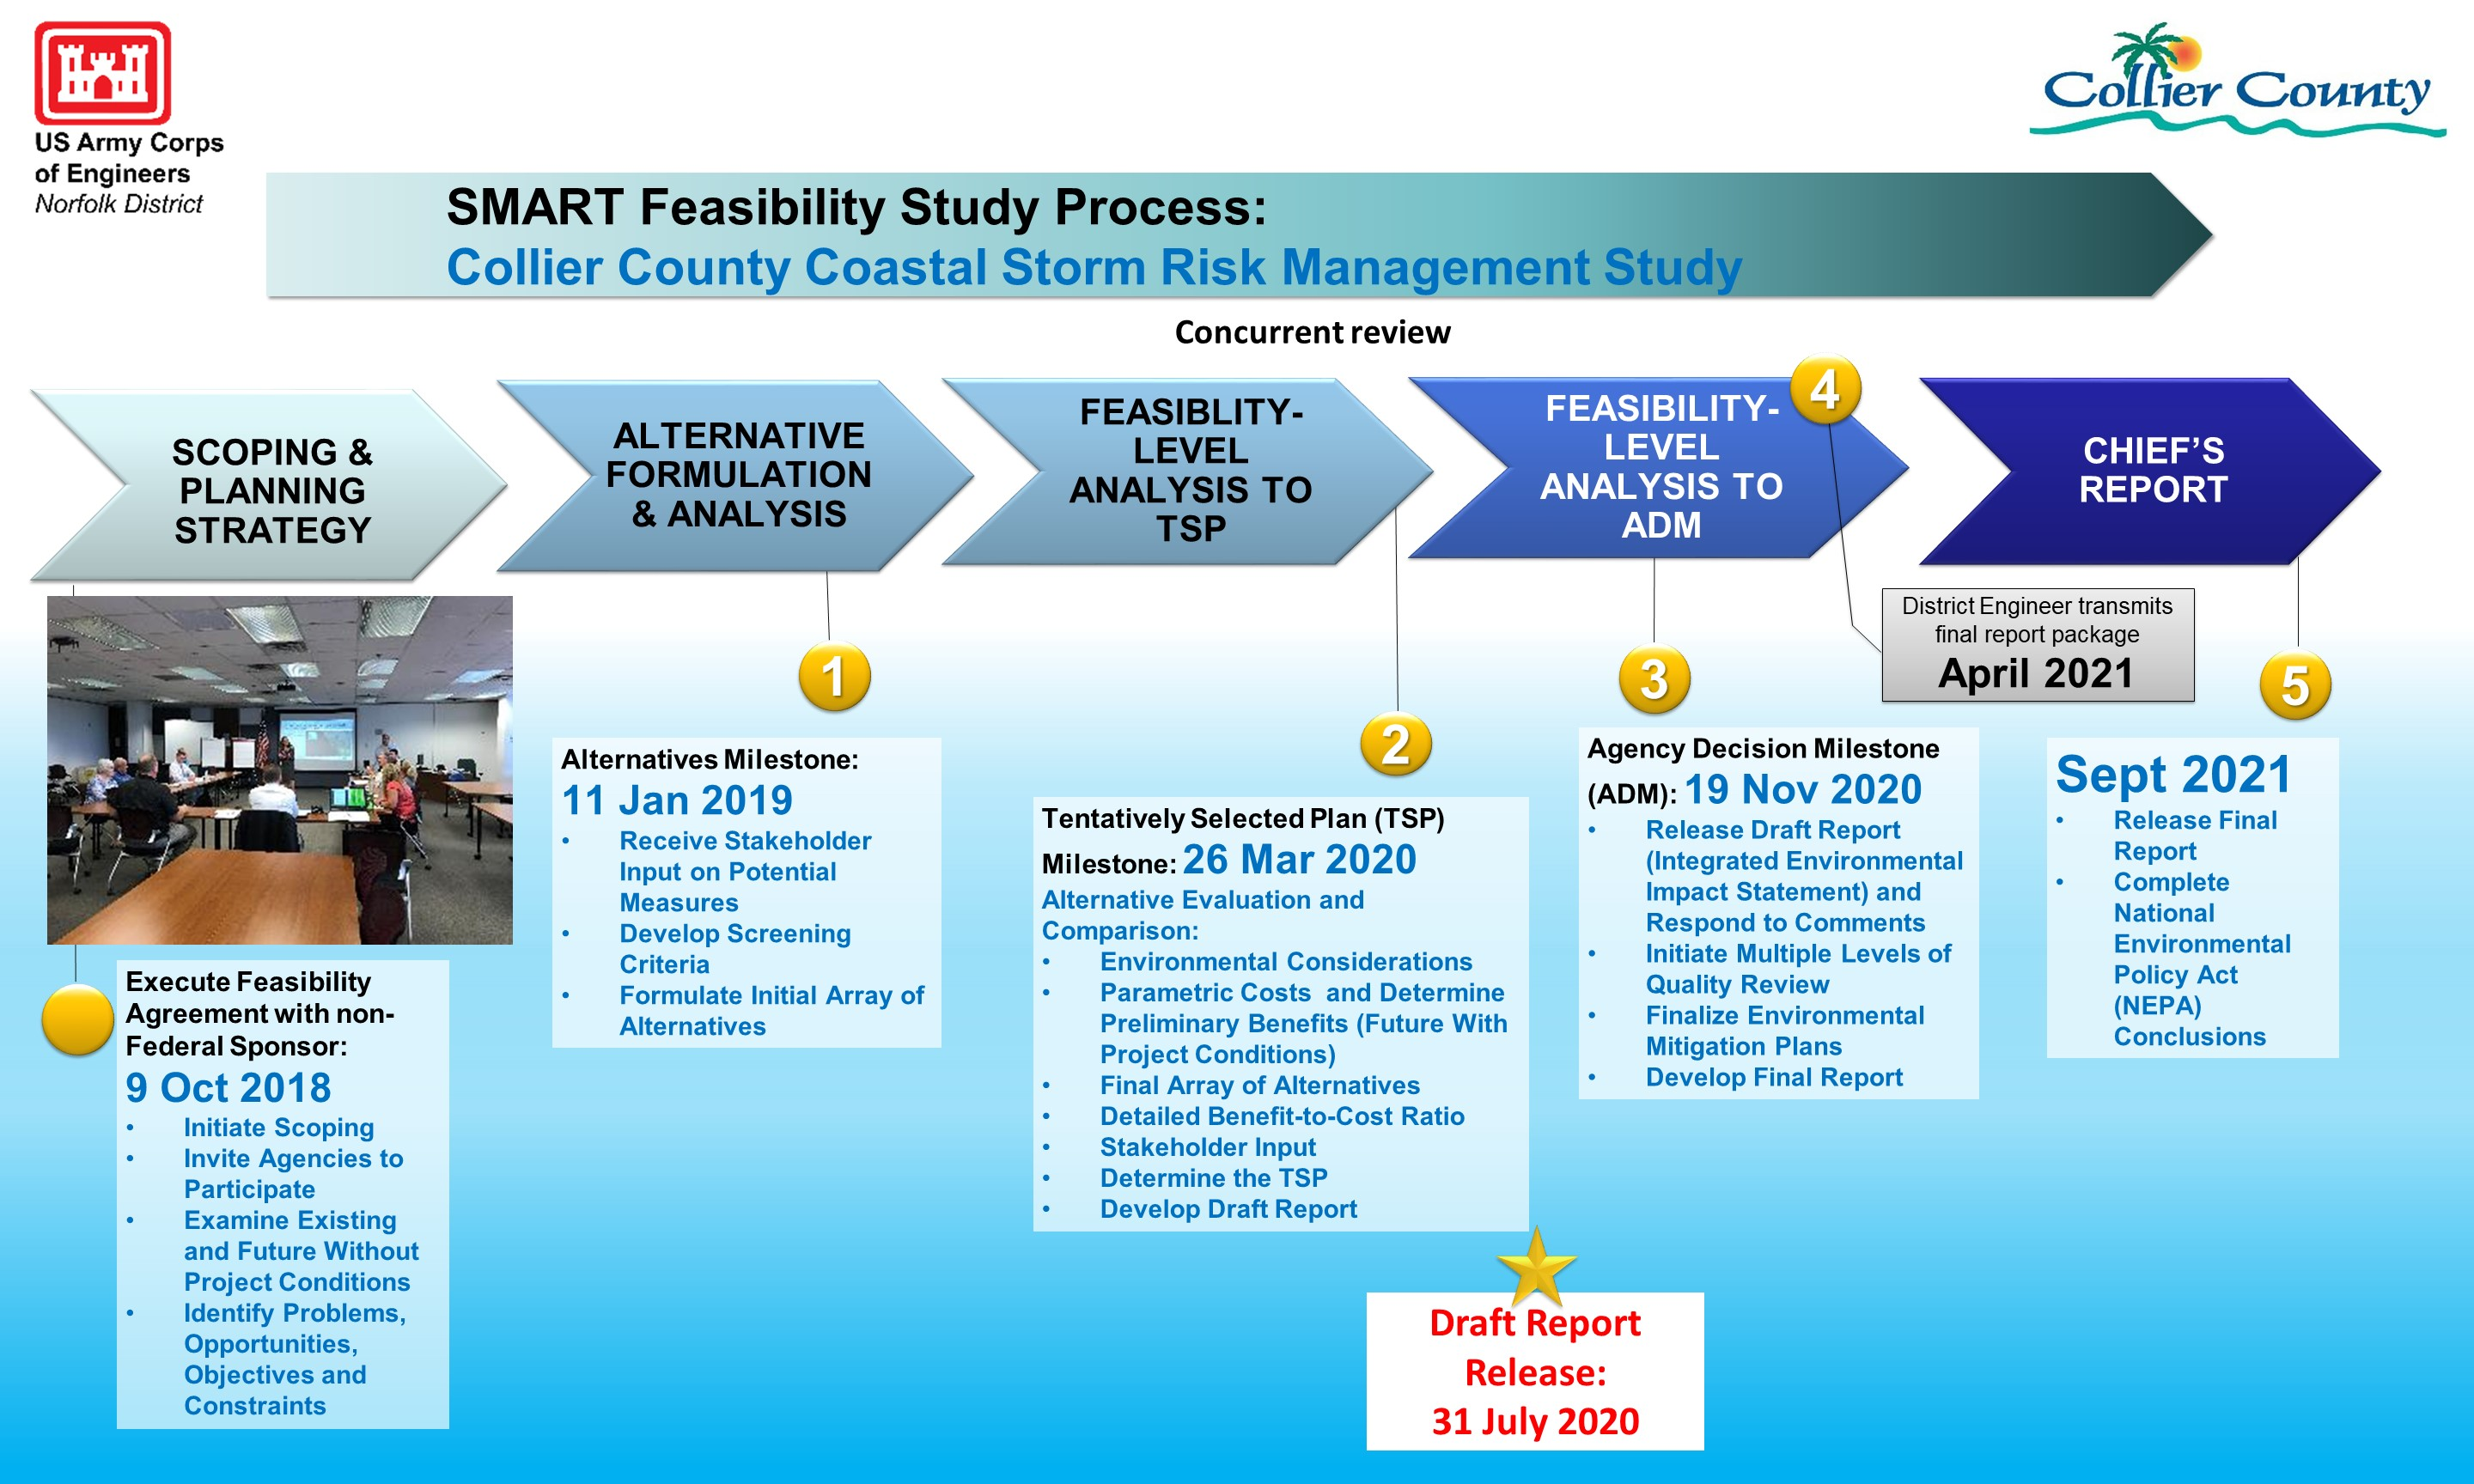 Collier County CSRM Study Process